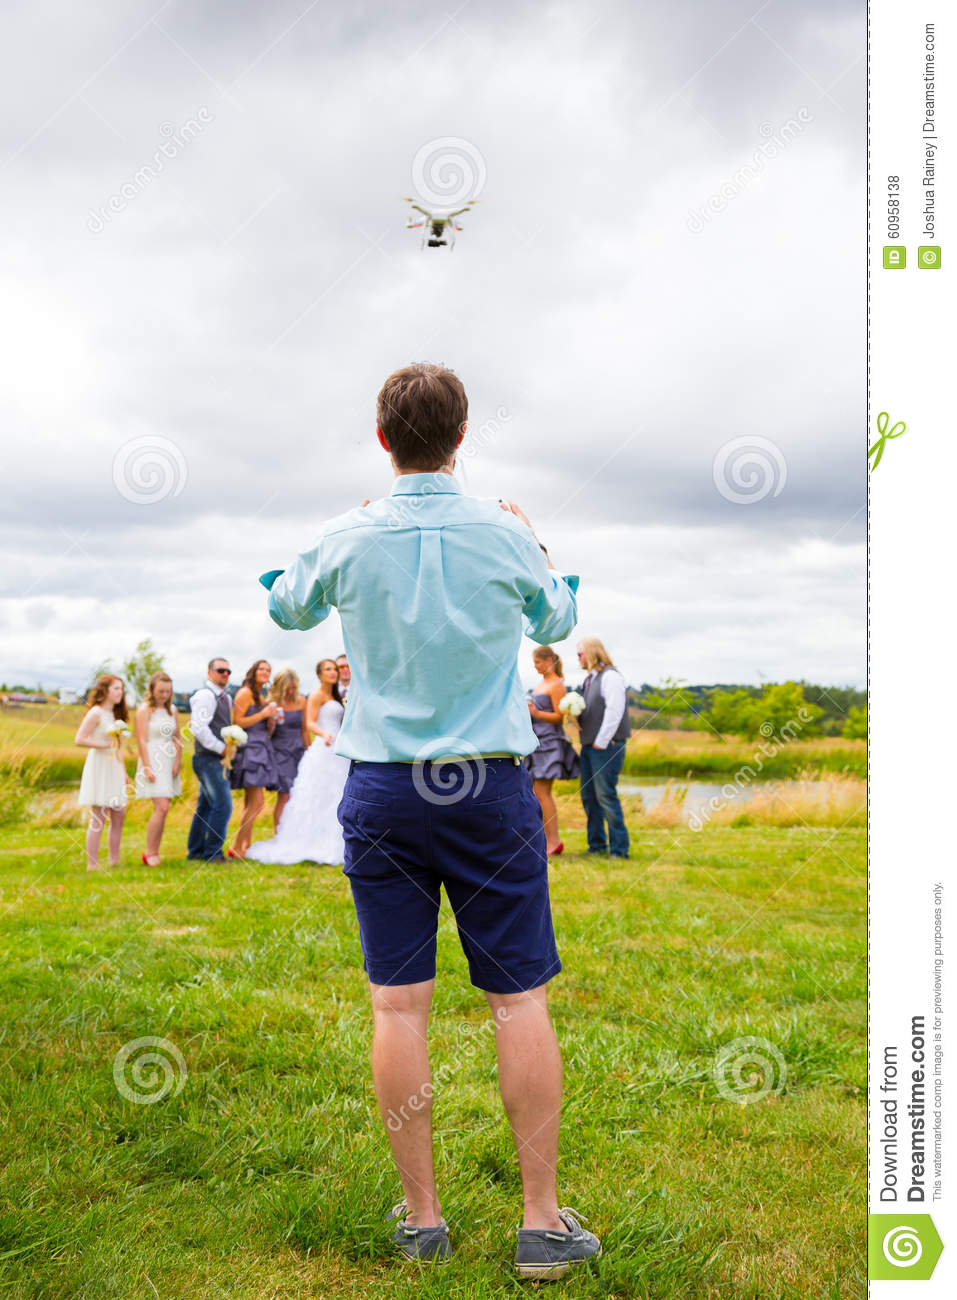 Quad Copter Pilot Flying Drone At Wedding Editorial Stock Photo